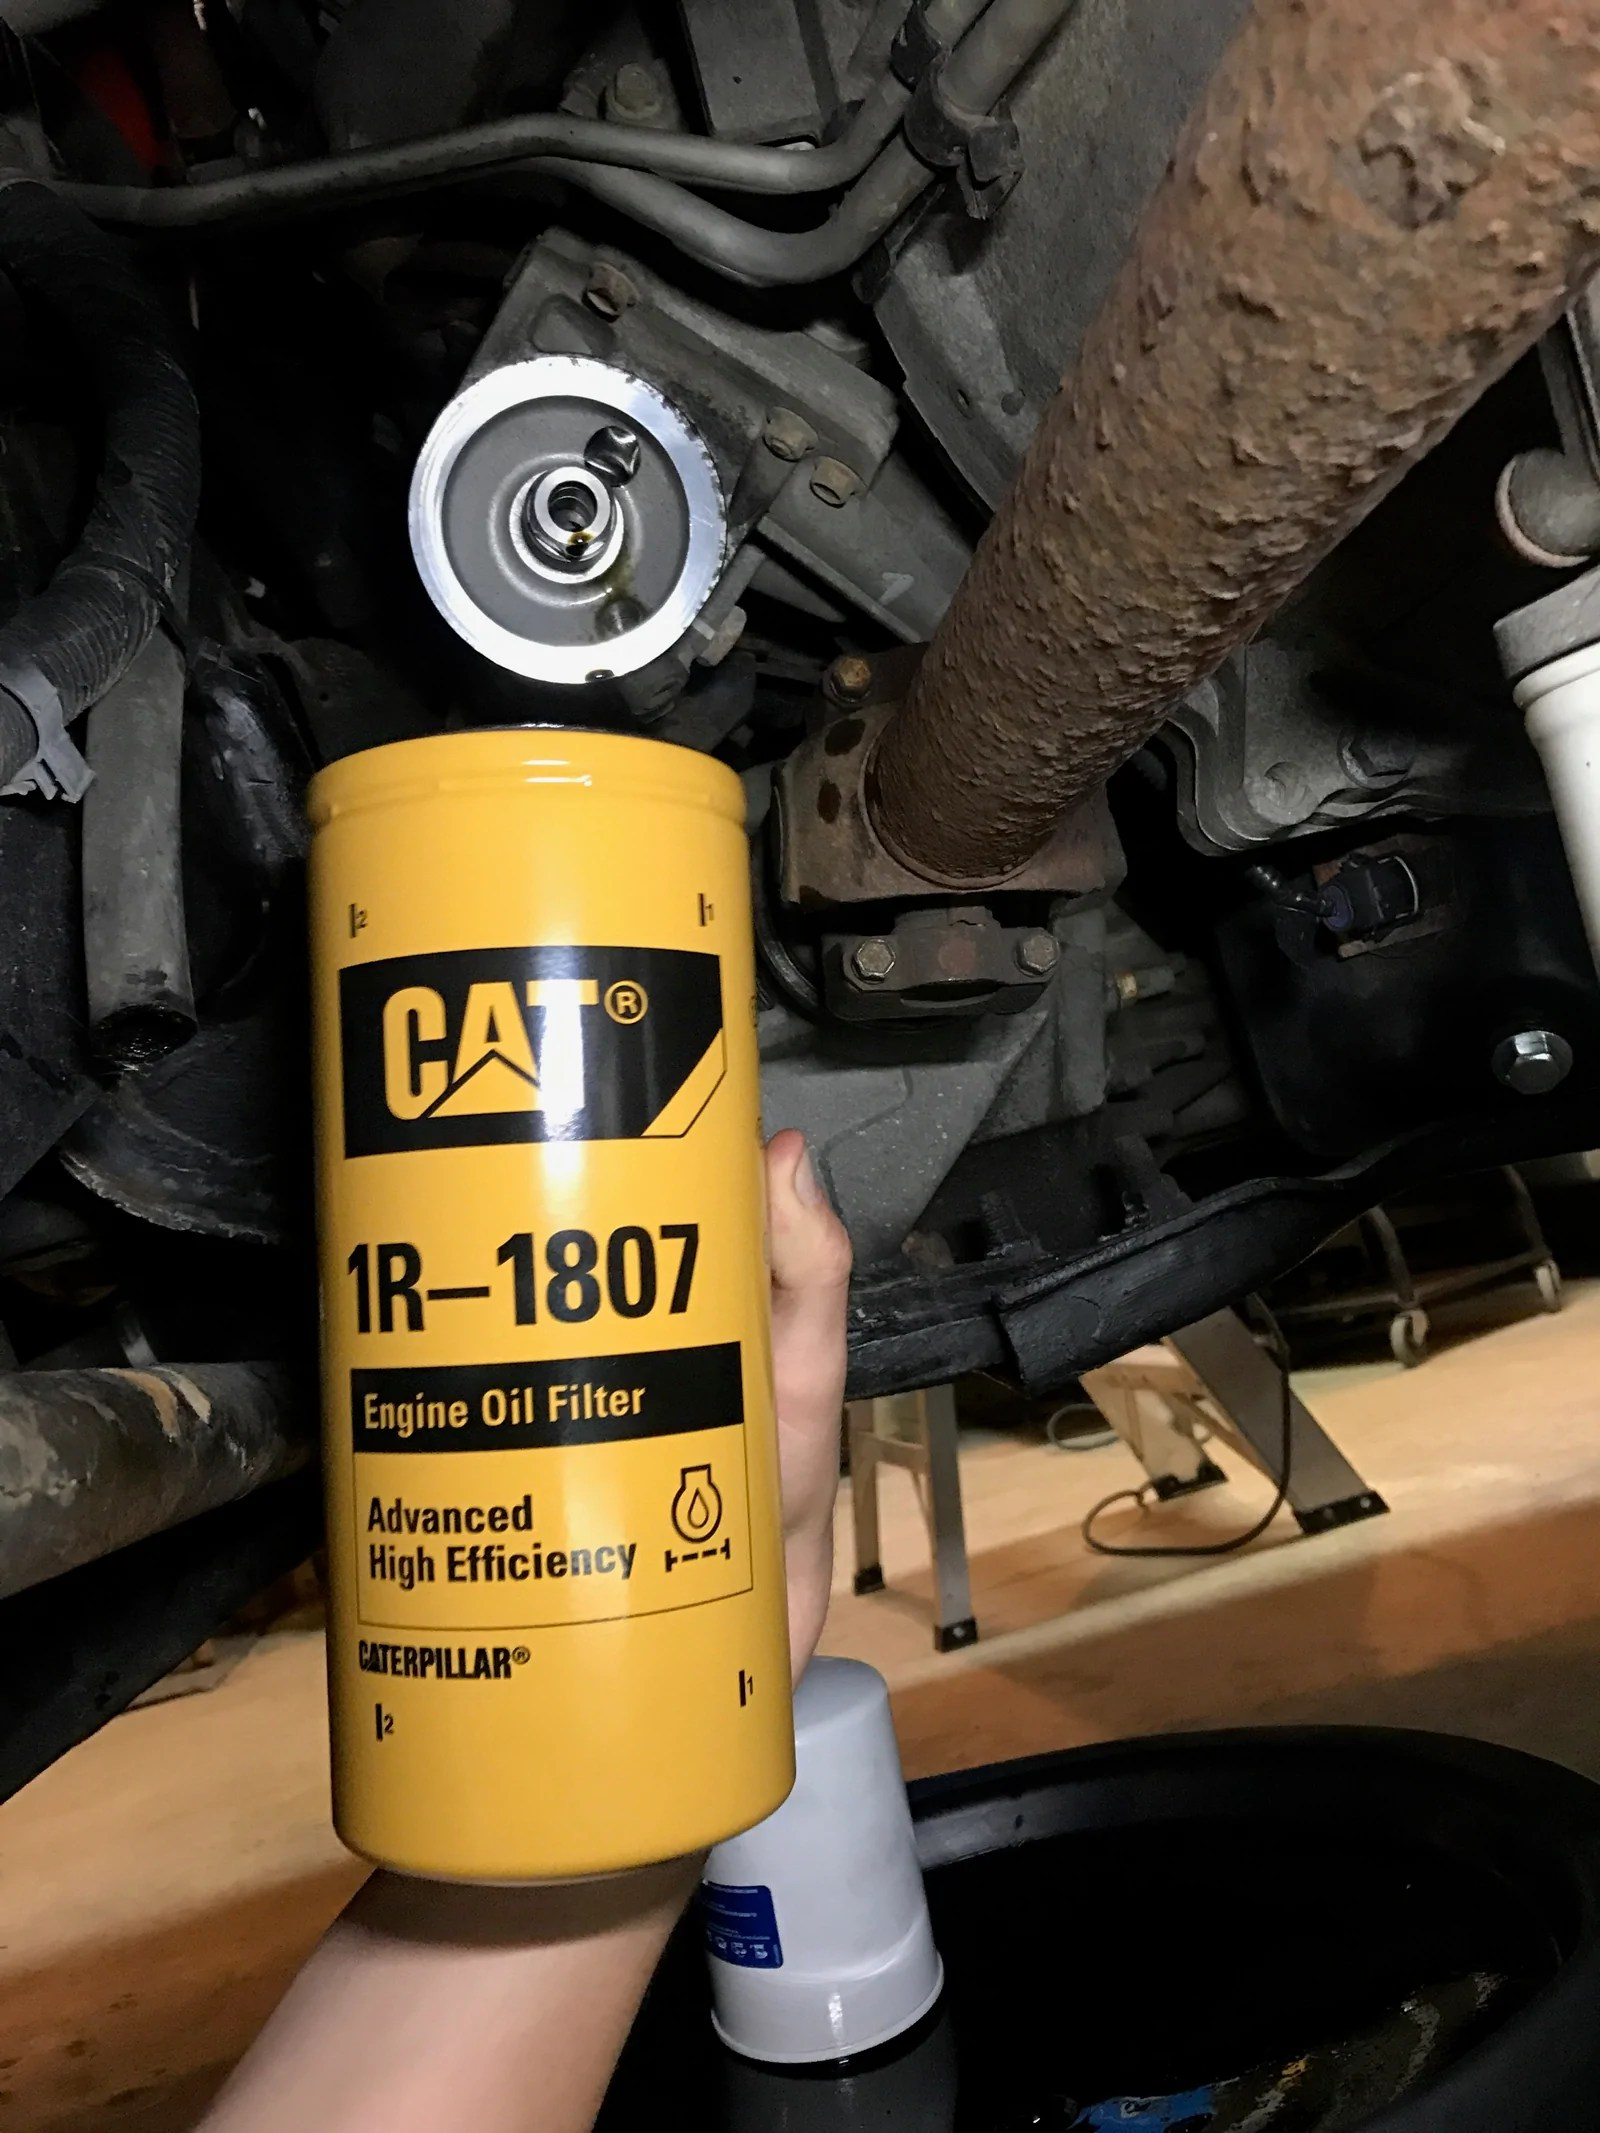 duramax cat oil filter conversion kit  [ 1200 x 1600 Pixel ]